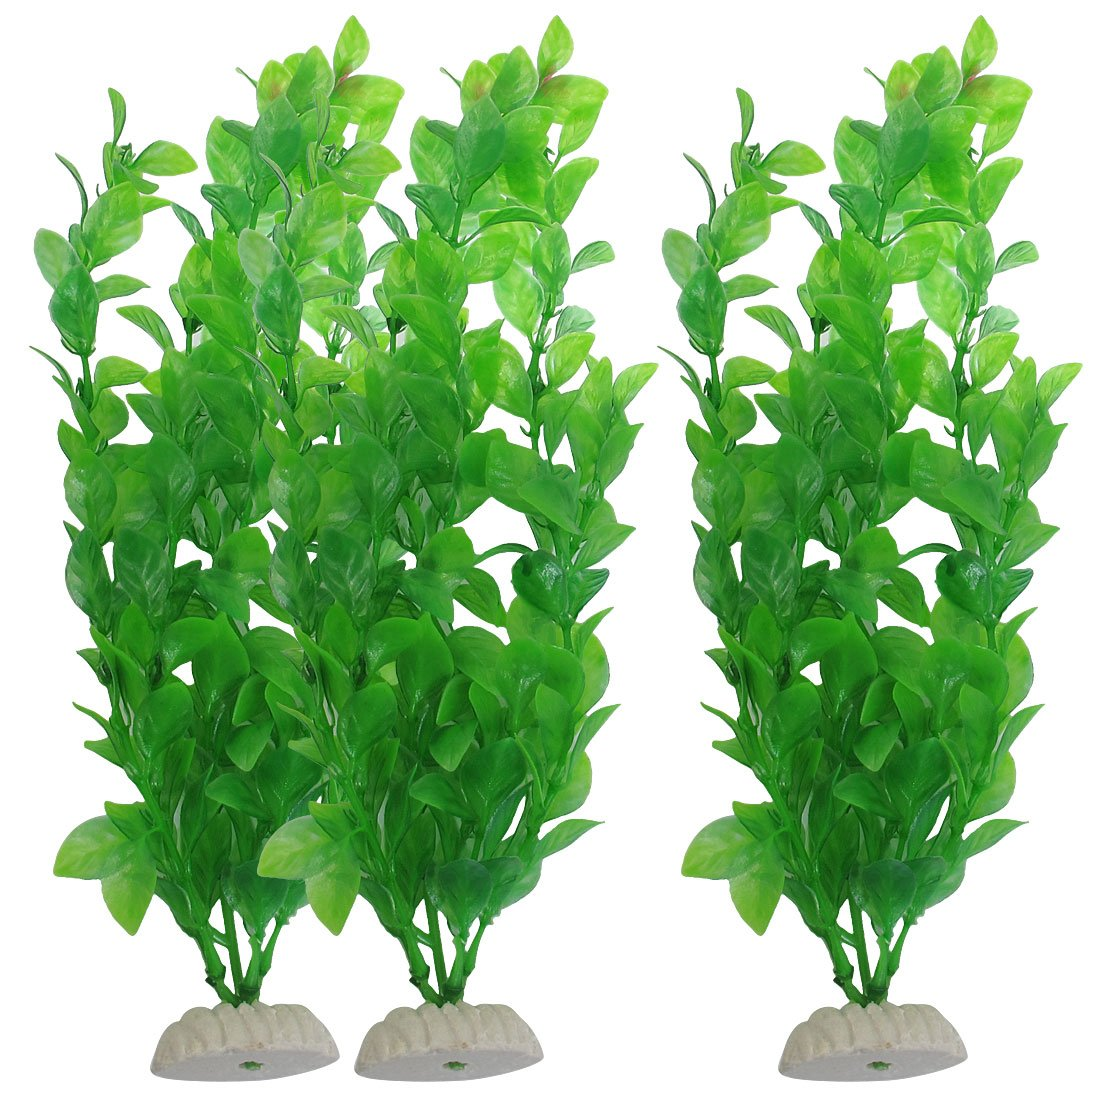 Fish aquarium with plants - Amazon Com Uxcell 3 Piece Fish Tank Artificial Plants 10 6 Inch Green Aquarium Decor Plastic Plants Pet Supplies